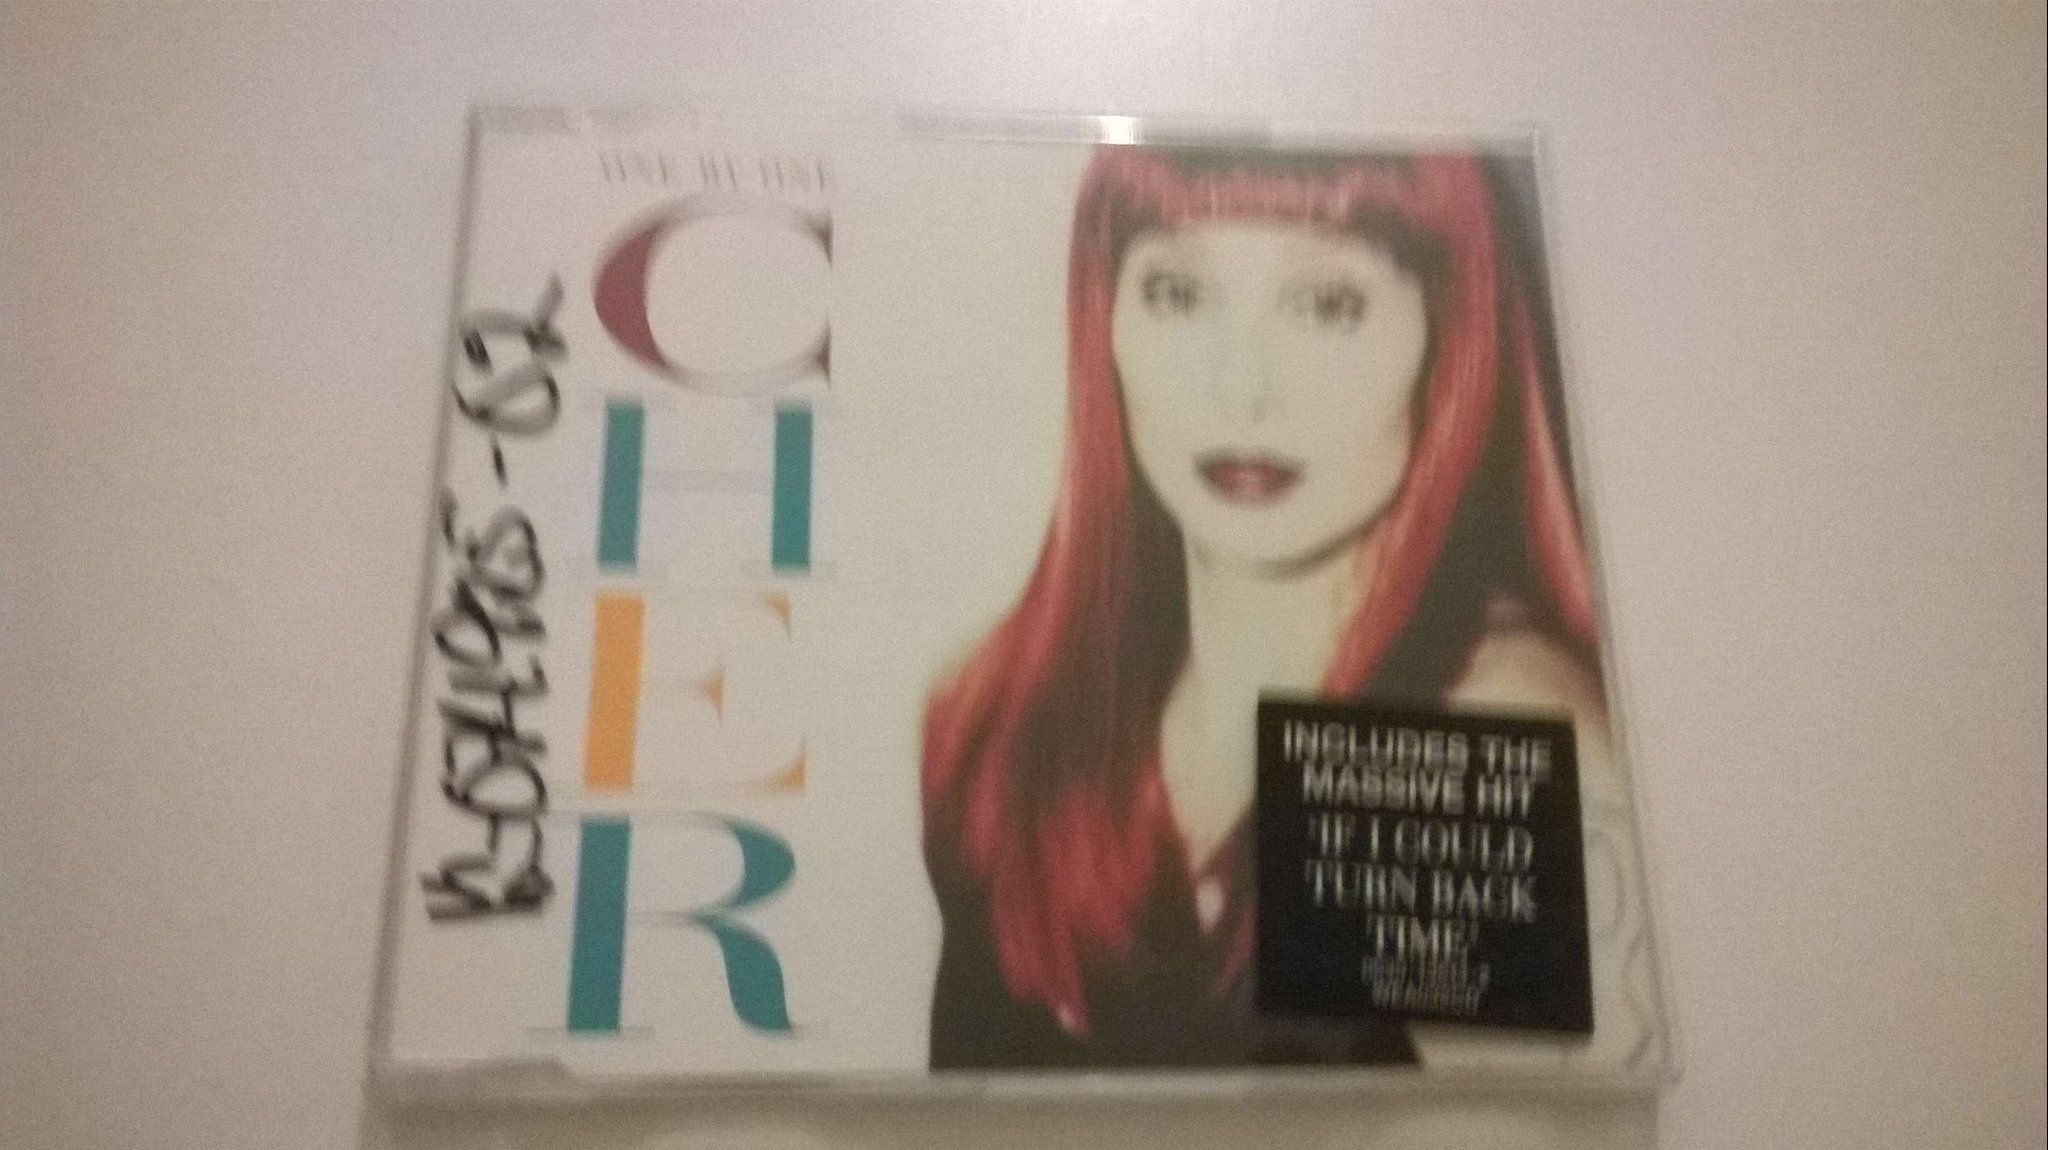 Cher - One by one, CD album